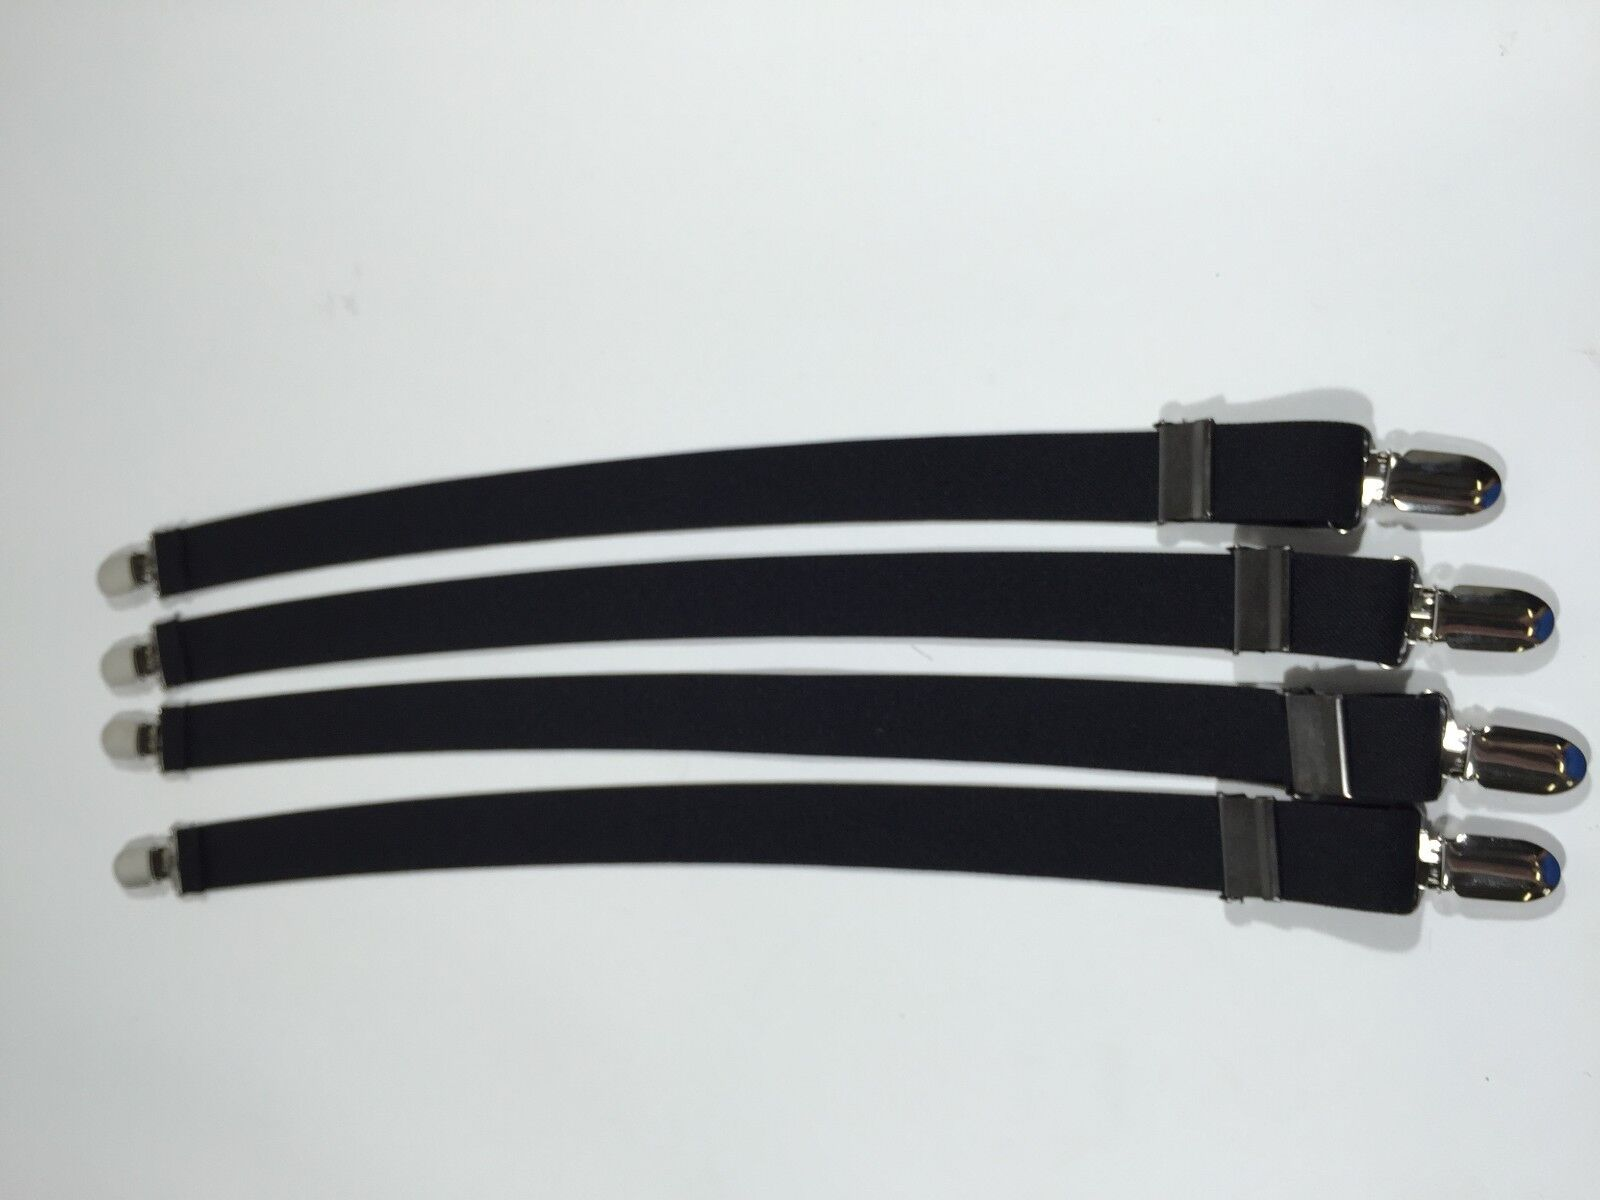 Military 4pk Shirt Stay Garters With Gator Clip BLACK Made in USA